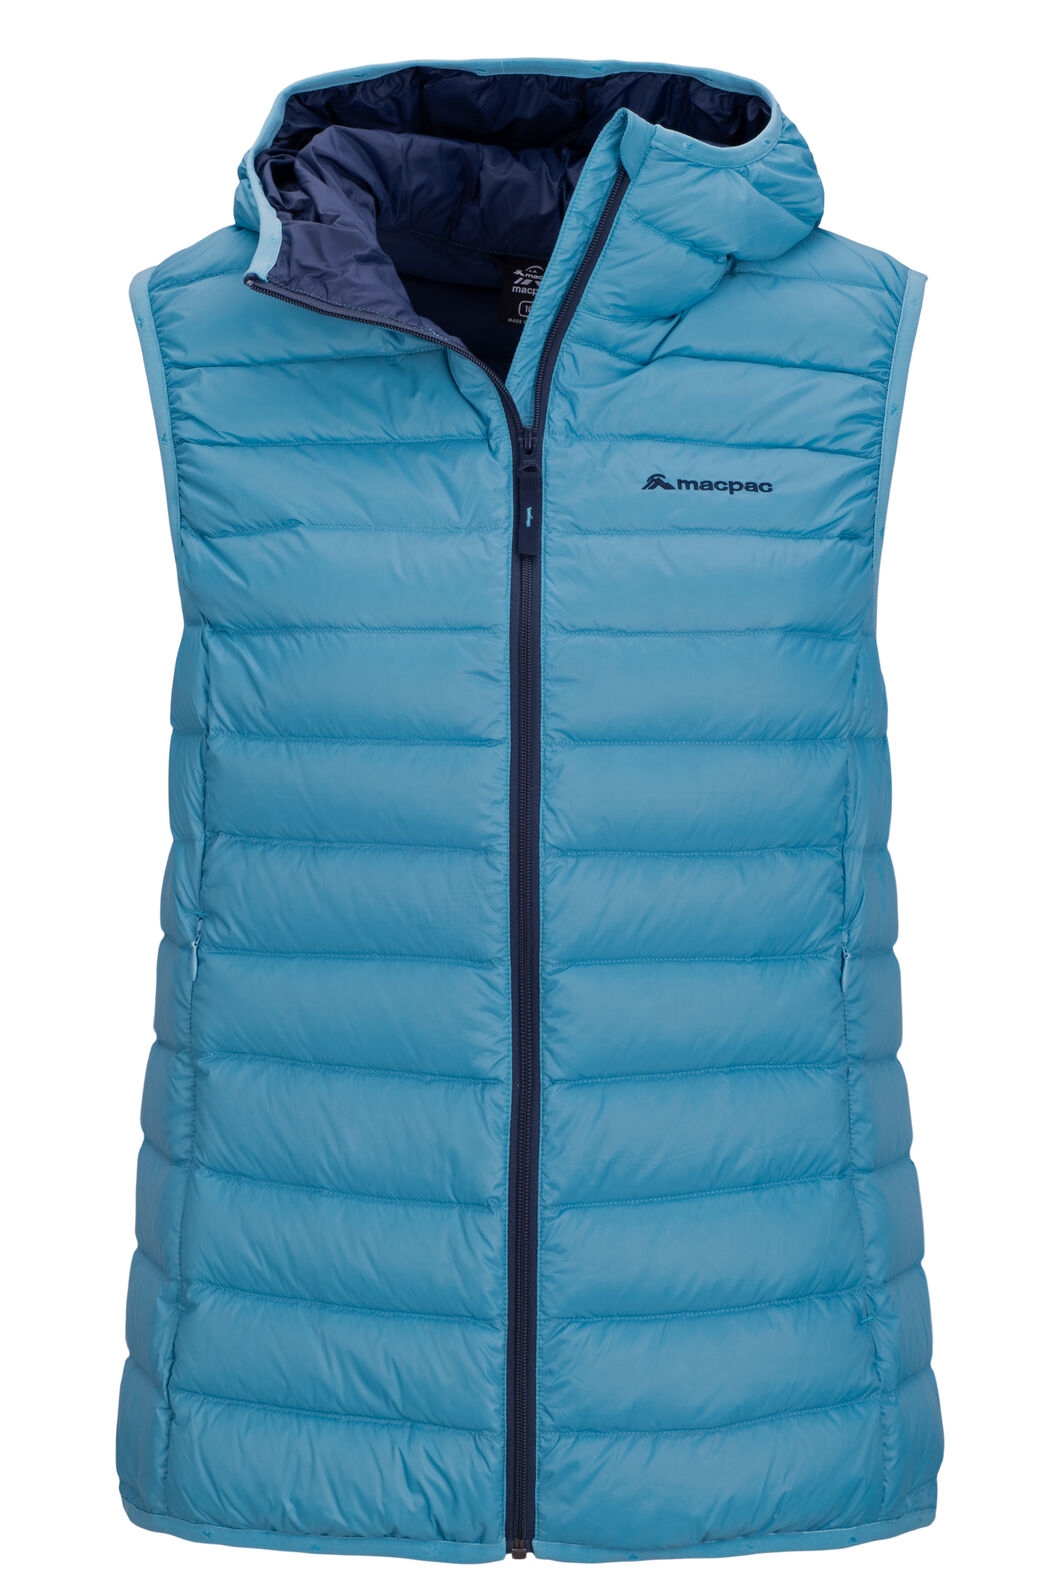 Macpac Uber Light Hooded Down Vest — Women's, Delphinium, hi-res